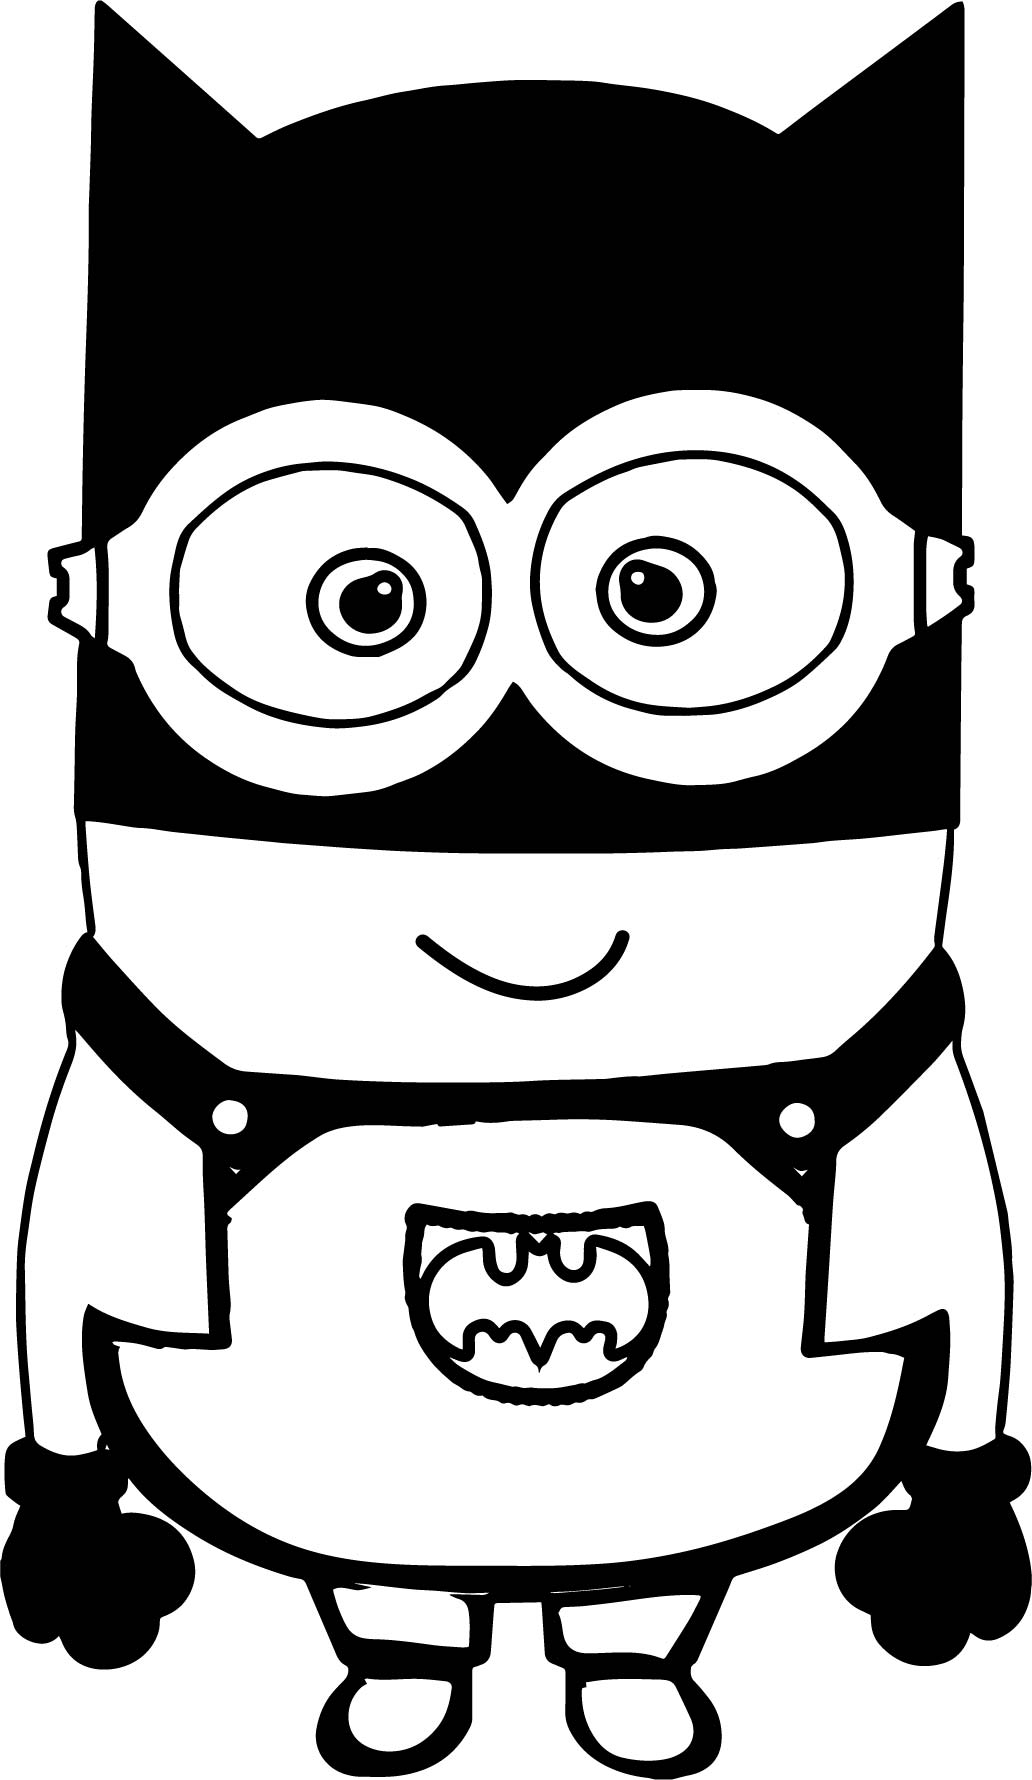 1032x1780 Batman Cartoon Minions Coloring